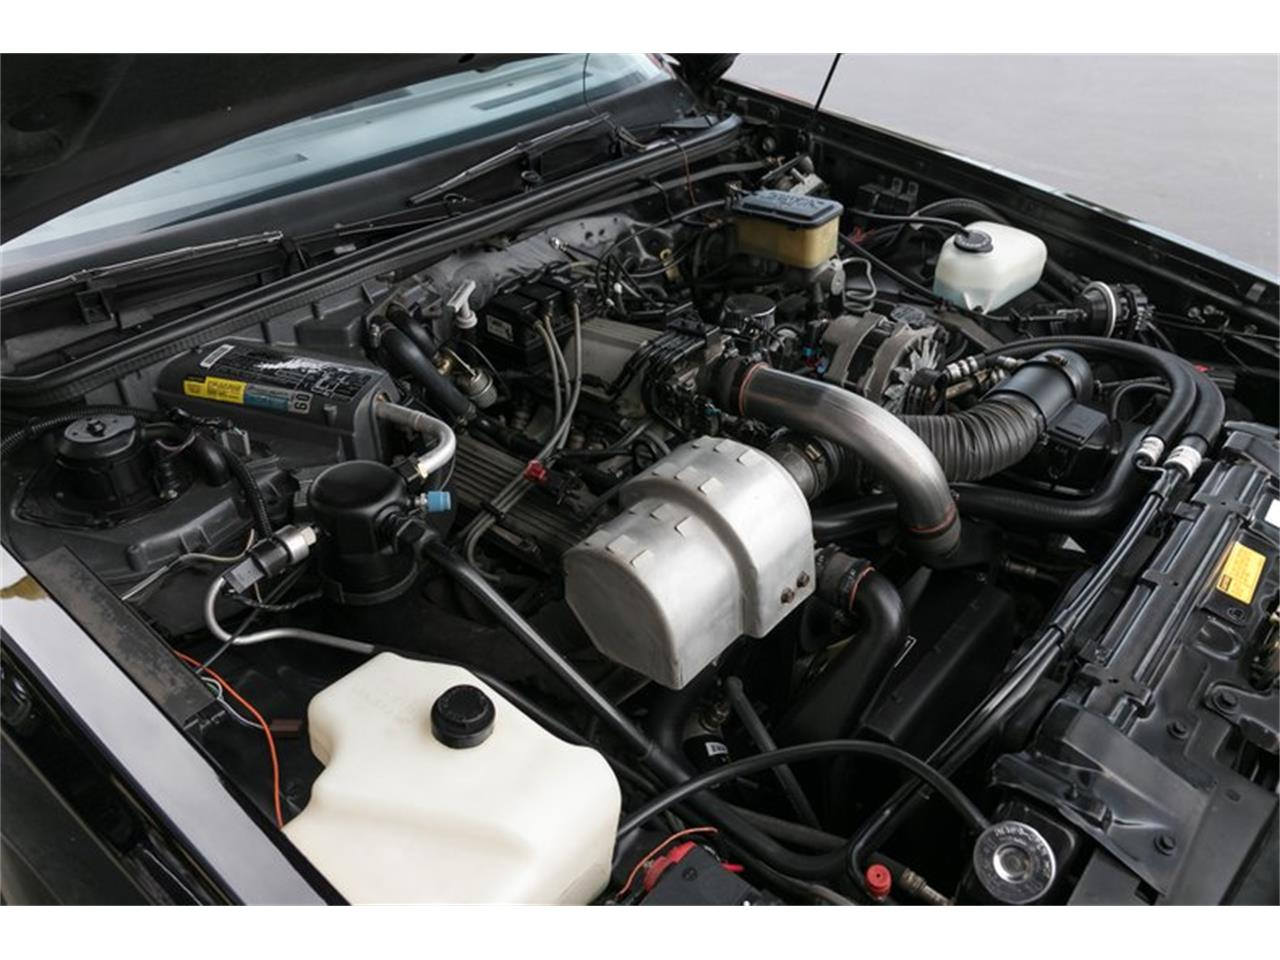 Large Picture of 1987 Buick Grand National located in St. Charles Missouri - $32,995.00 Offered by Fast Lane Classic Cars Inc. - QL95